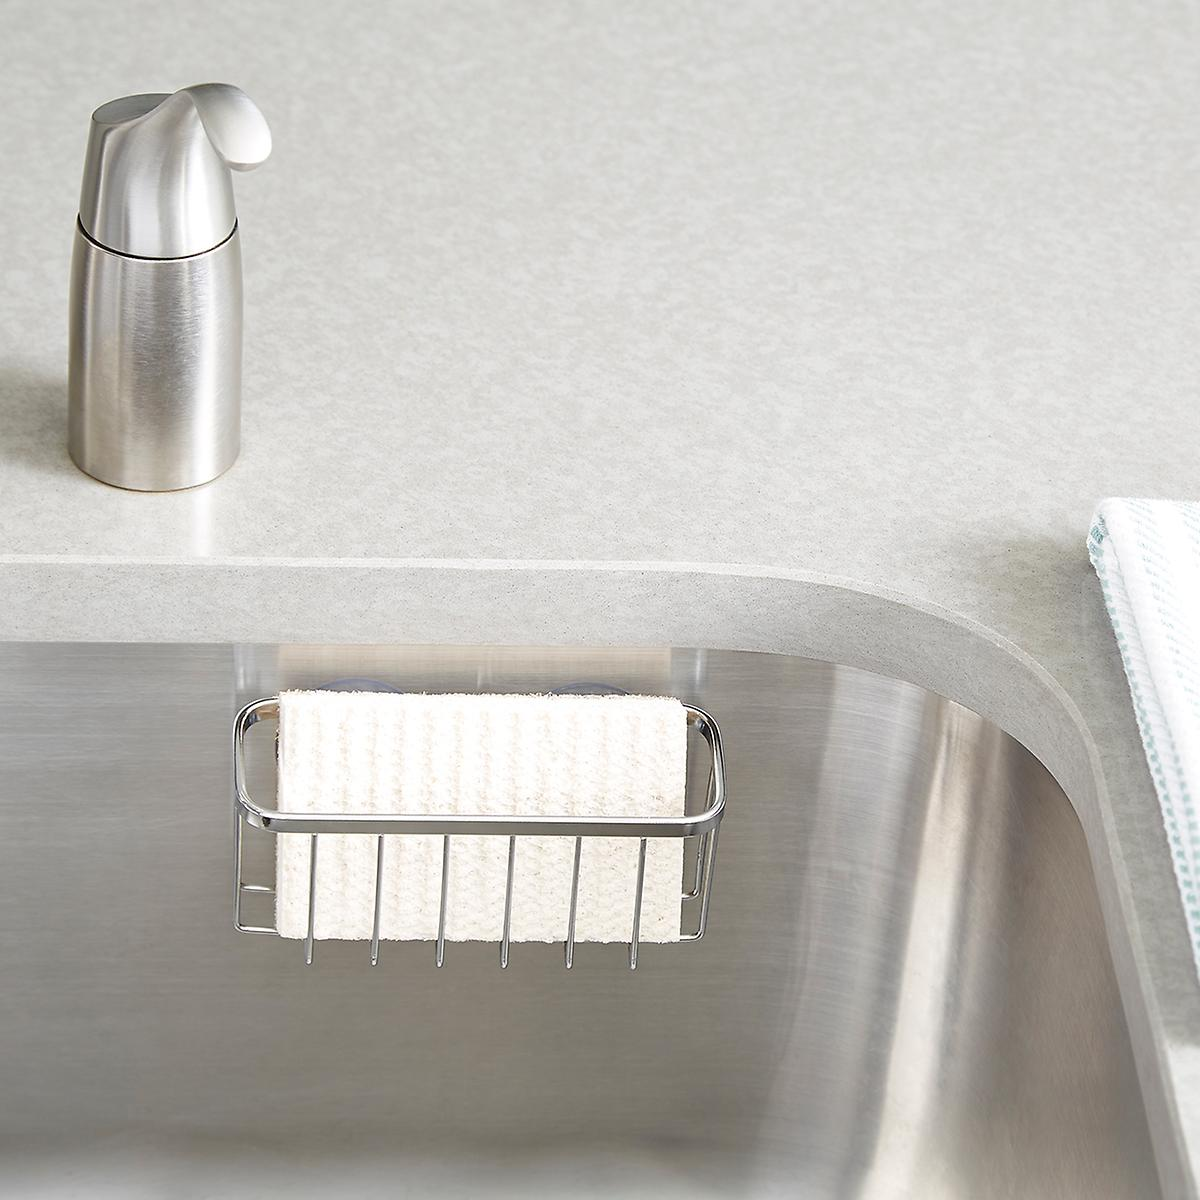 Stainless Steel Suction Sink Center